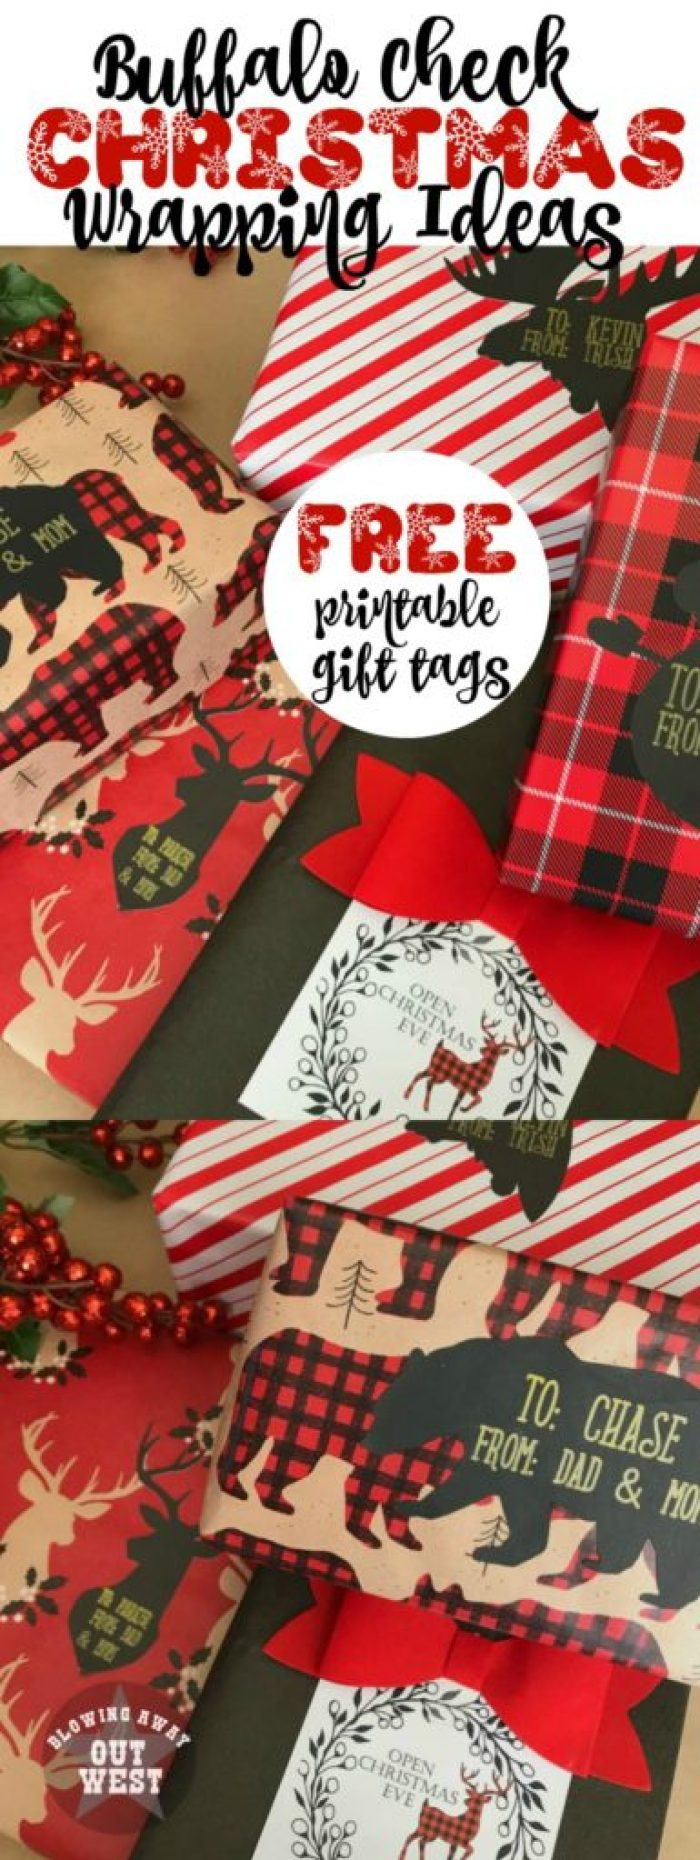 Buffalo Check Gift Wrapping Ideas: Free reindeer printable gift tags   blowingawayoutwest.com - Easy Cricut project to make customized tags. #christmasprintable #freechristmasgifttags #christmaswrapping #buffalocheckchristmas #customgifttags